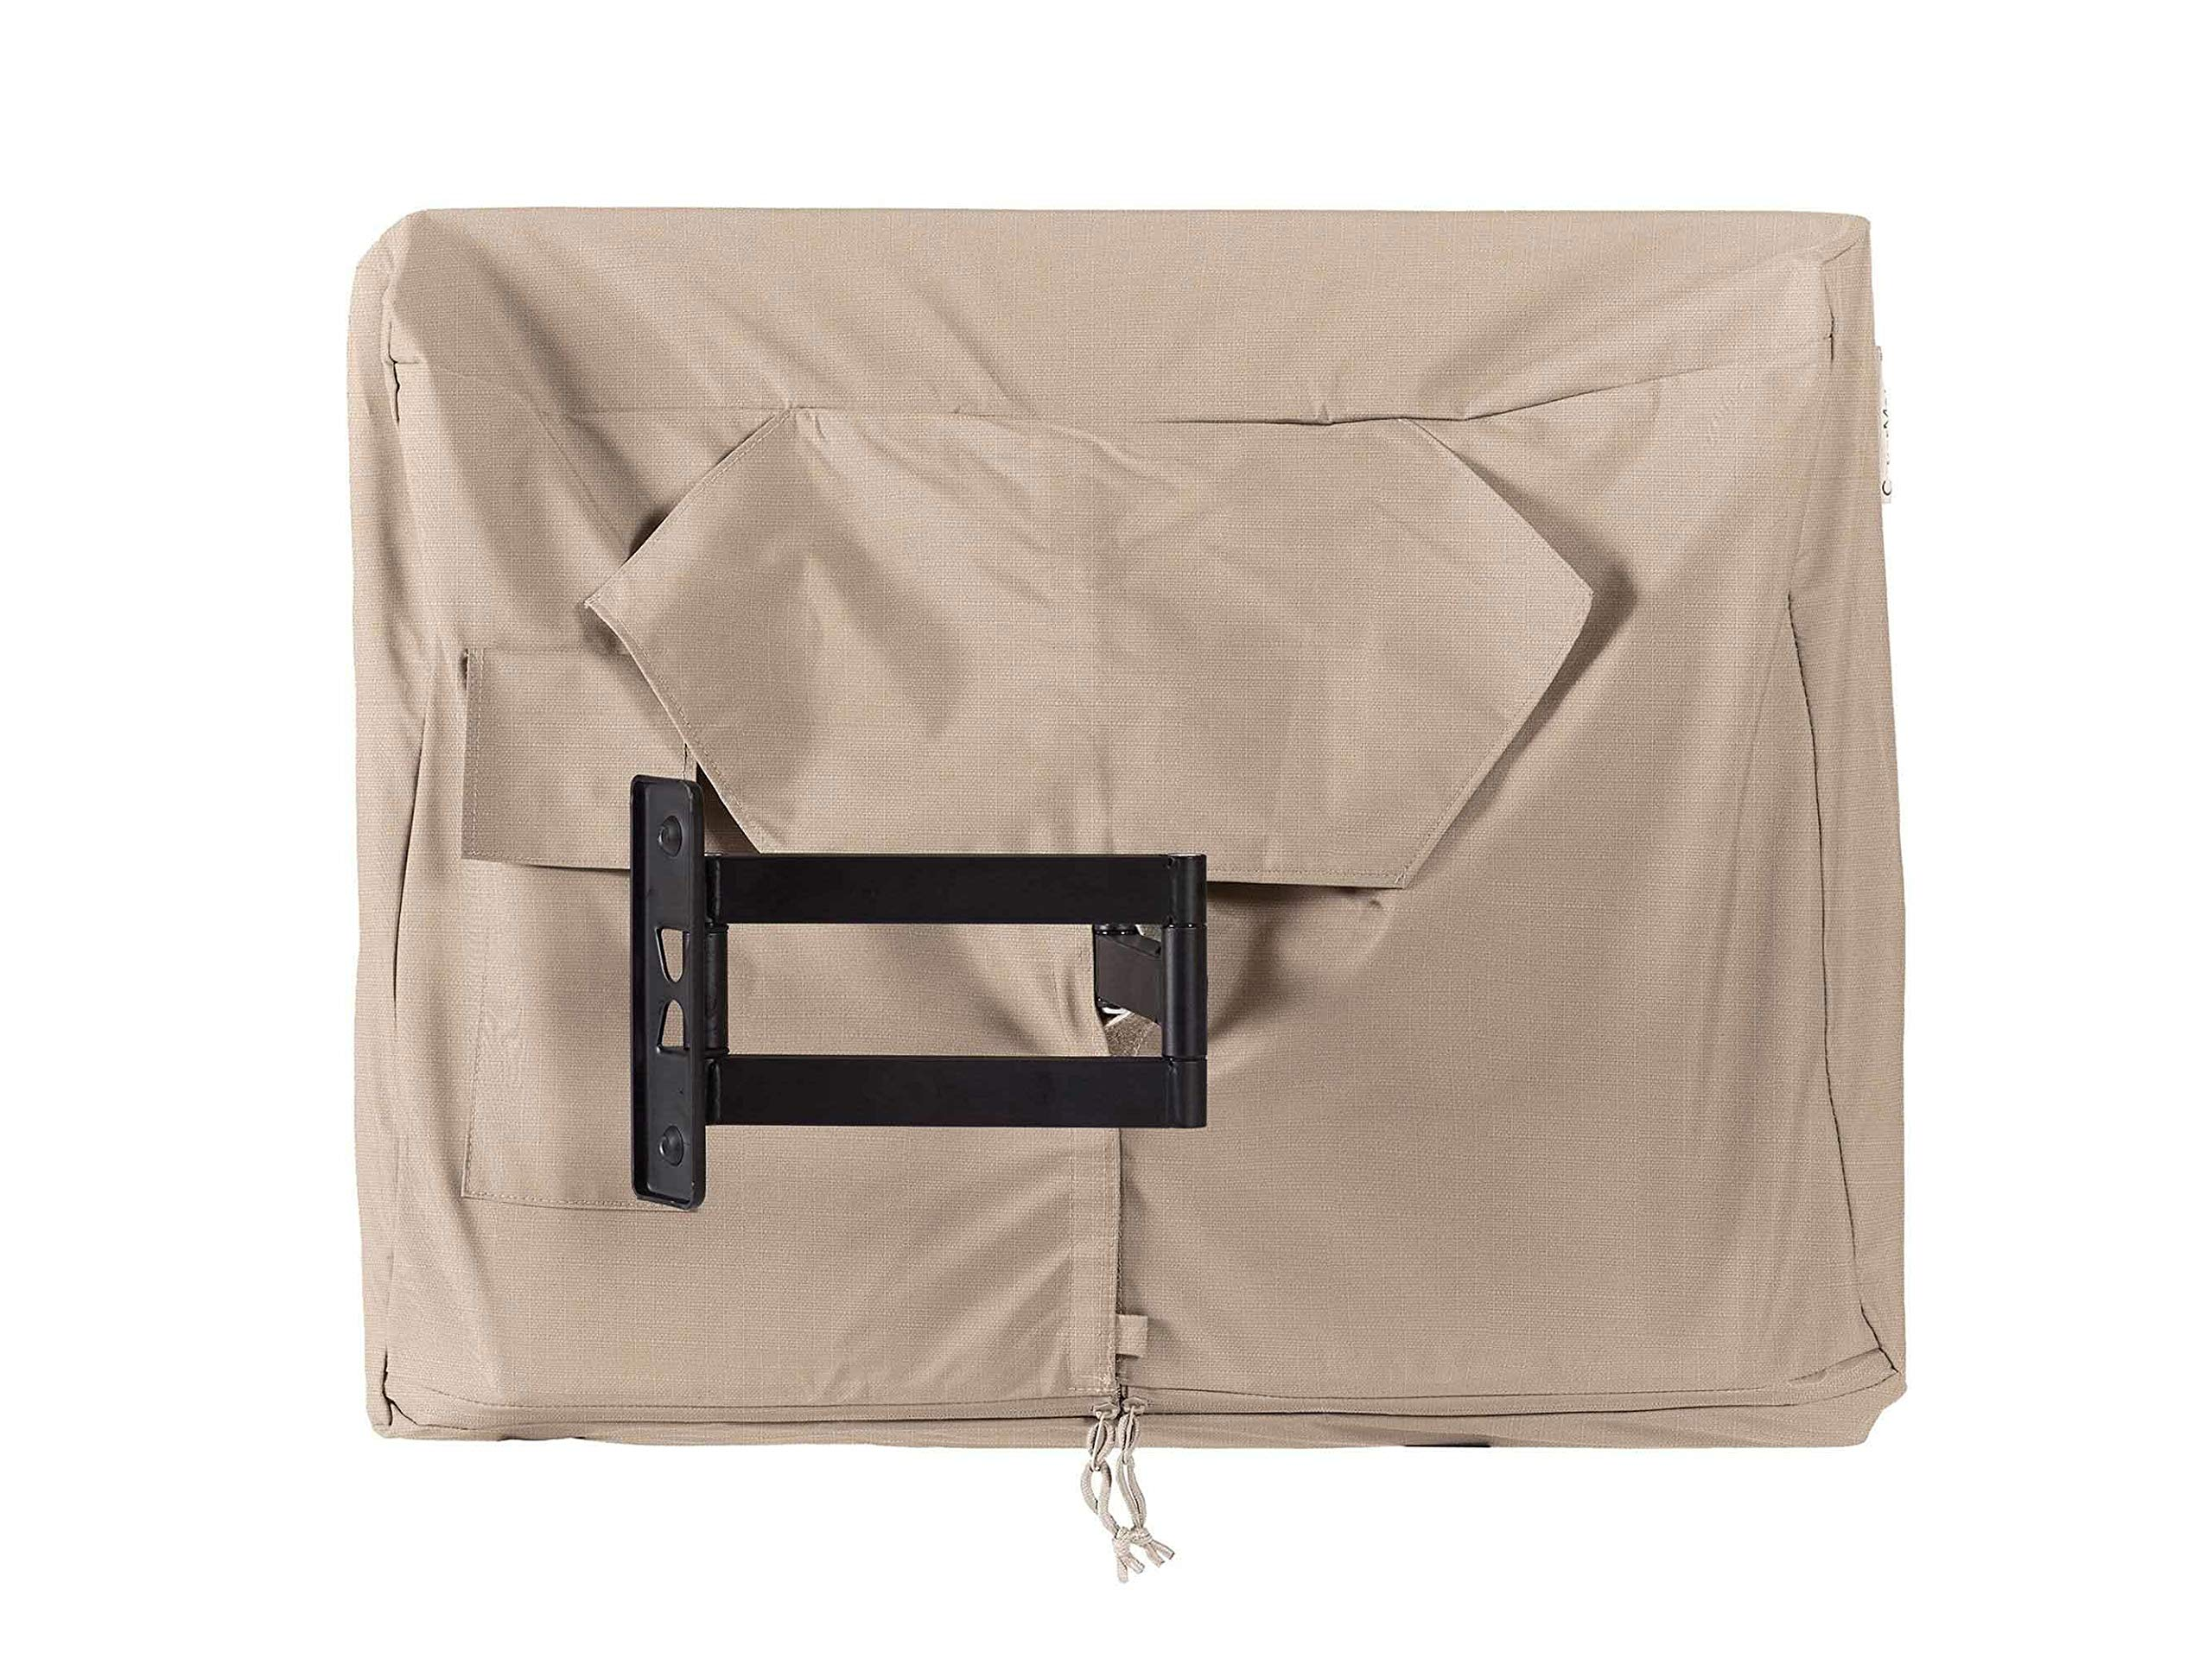 Covermates - Outdoor TV Cover - Fits 65 to 68 Inch TV's - Ultima - 600 Denier Fade Resistant Polyester - Full Coverage - Interior Fleece Lining - 7 YR Warranty - Water Resistant - Ripstop Tan by Covermates